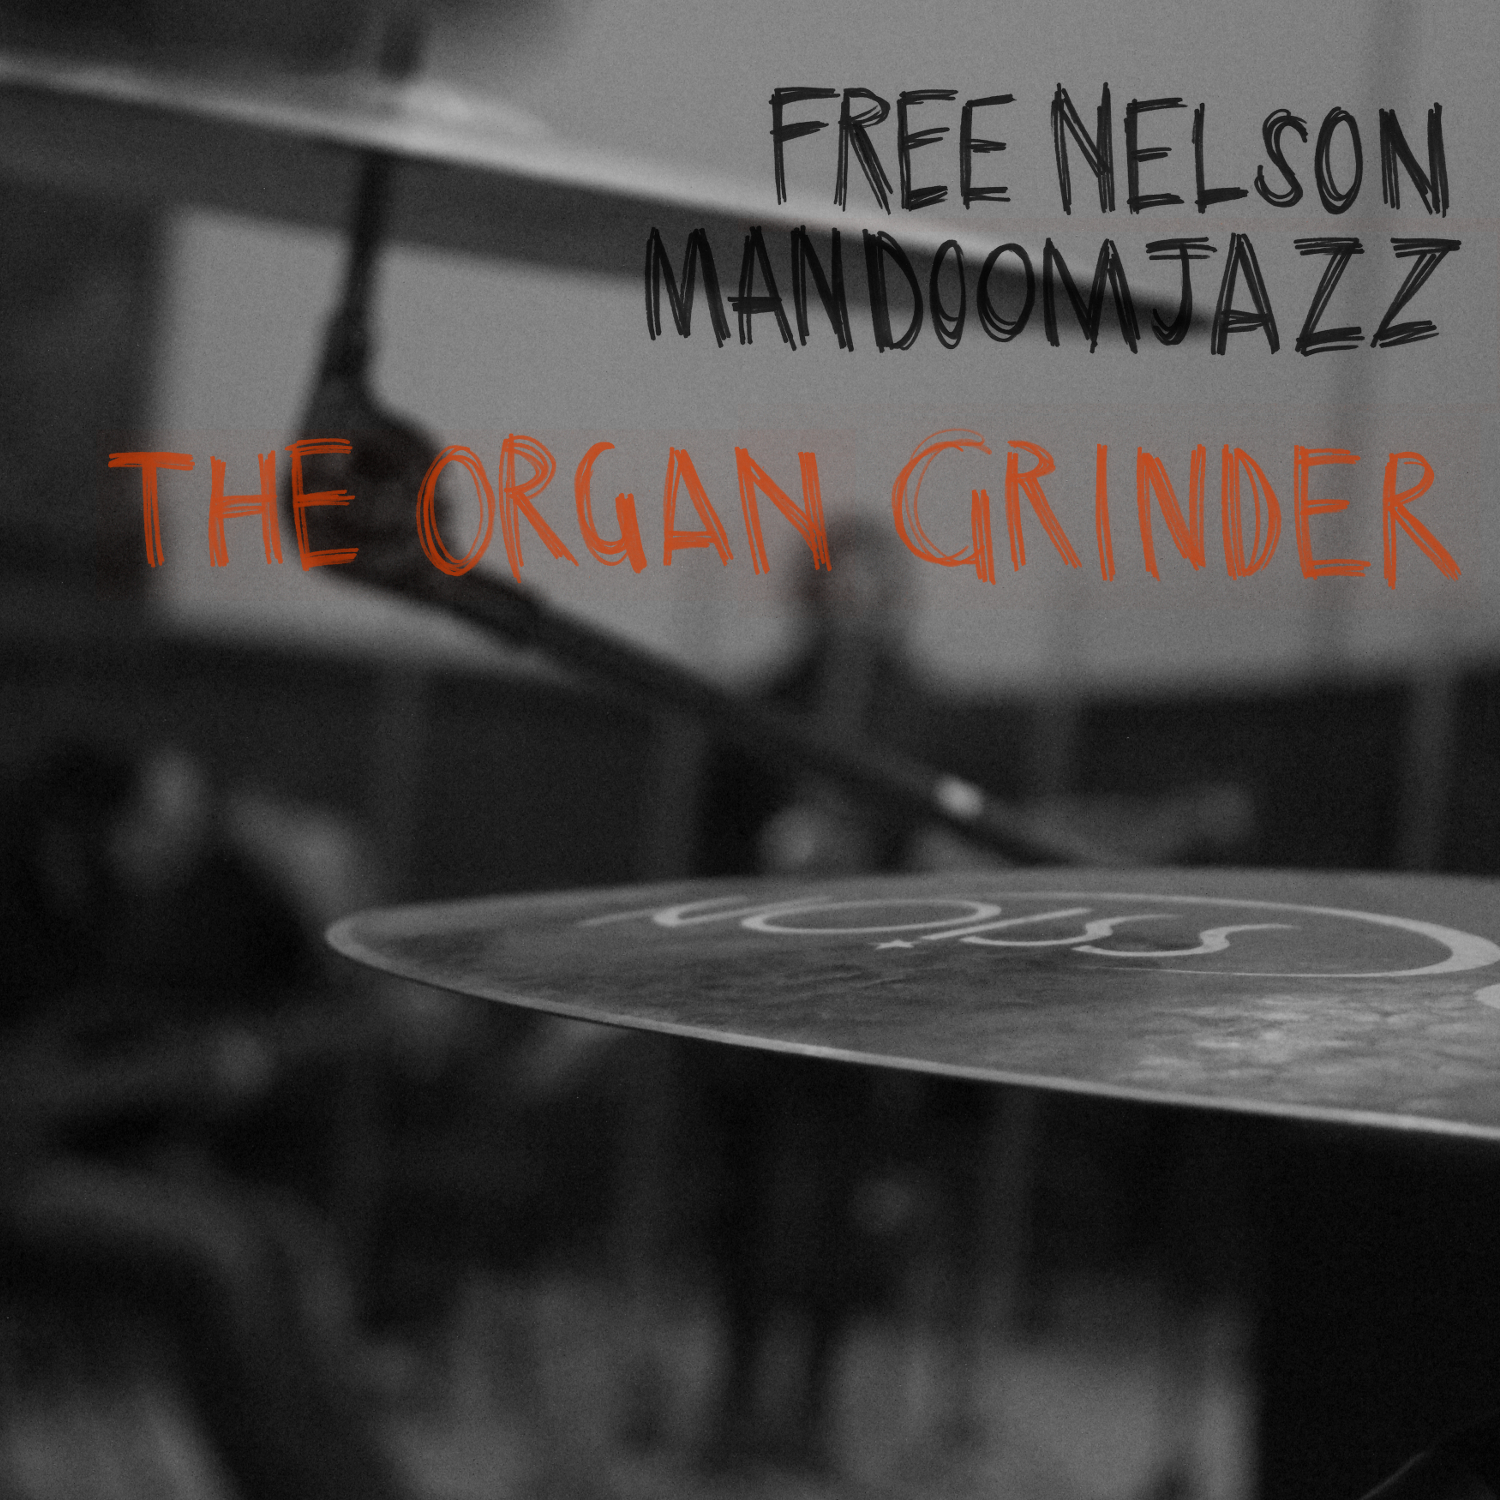 FREE NELSON MANDOOM JAZZ - THE ORGAN GRINDER, RareNoise Records